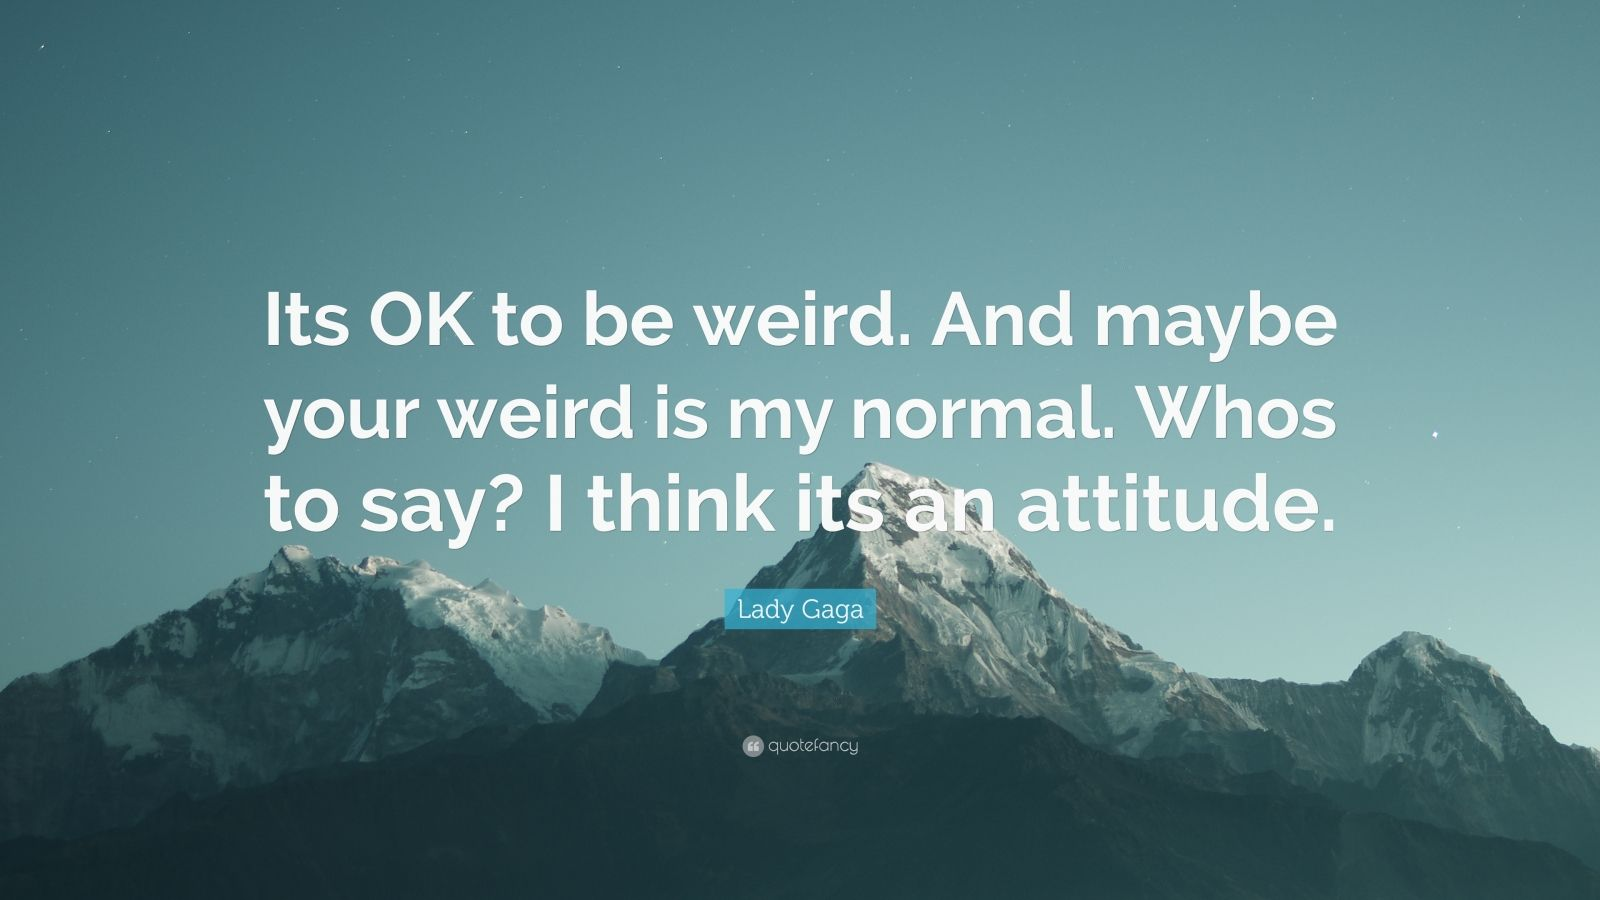 """Lady Gaga Quote: """"Its OK to be weird. And maybe your weird is my normal. Whos to say? I think its an attitude."""""""